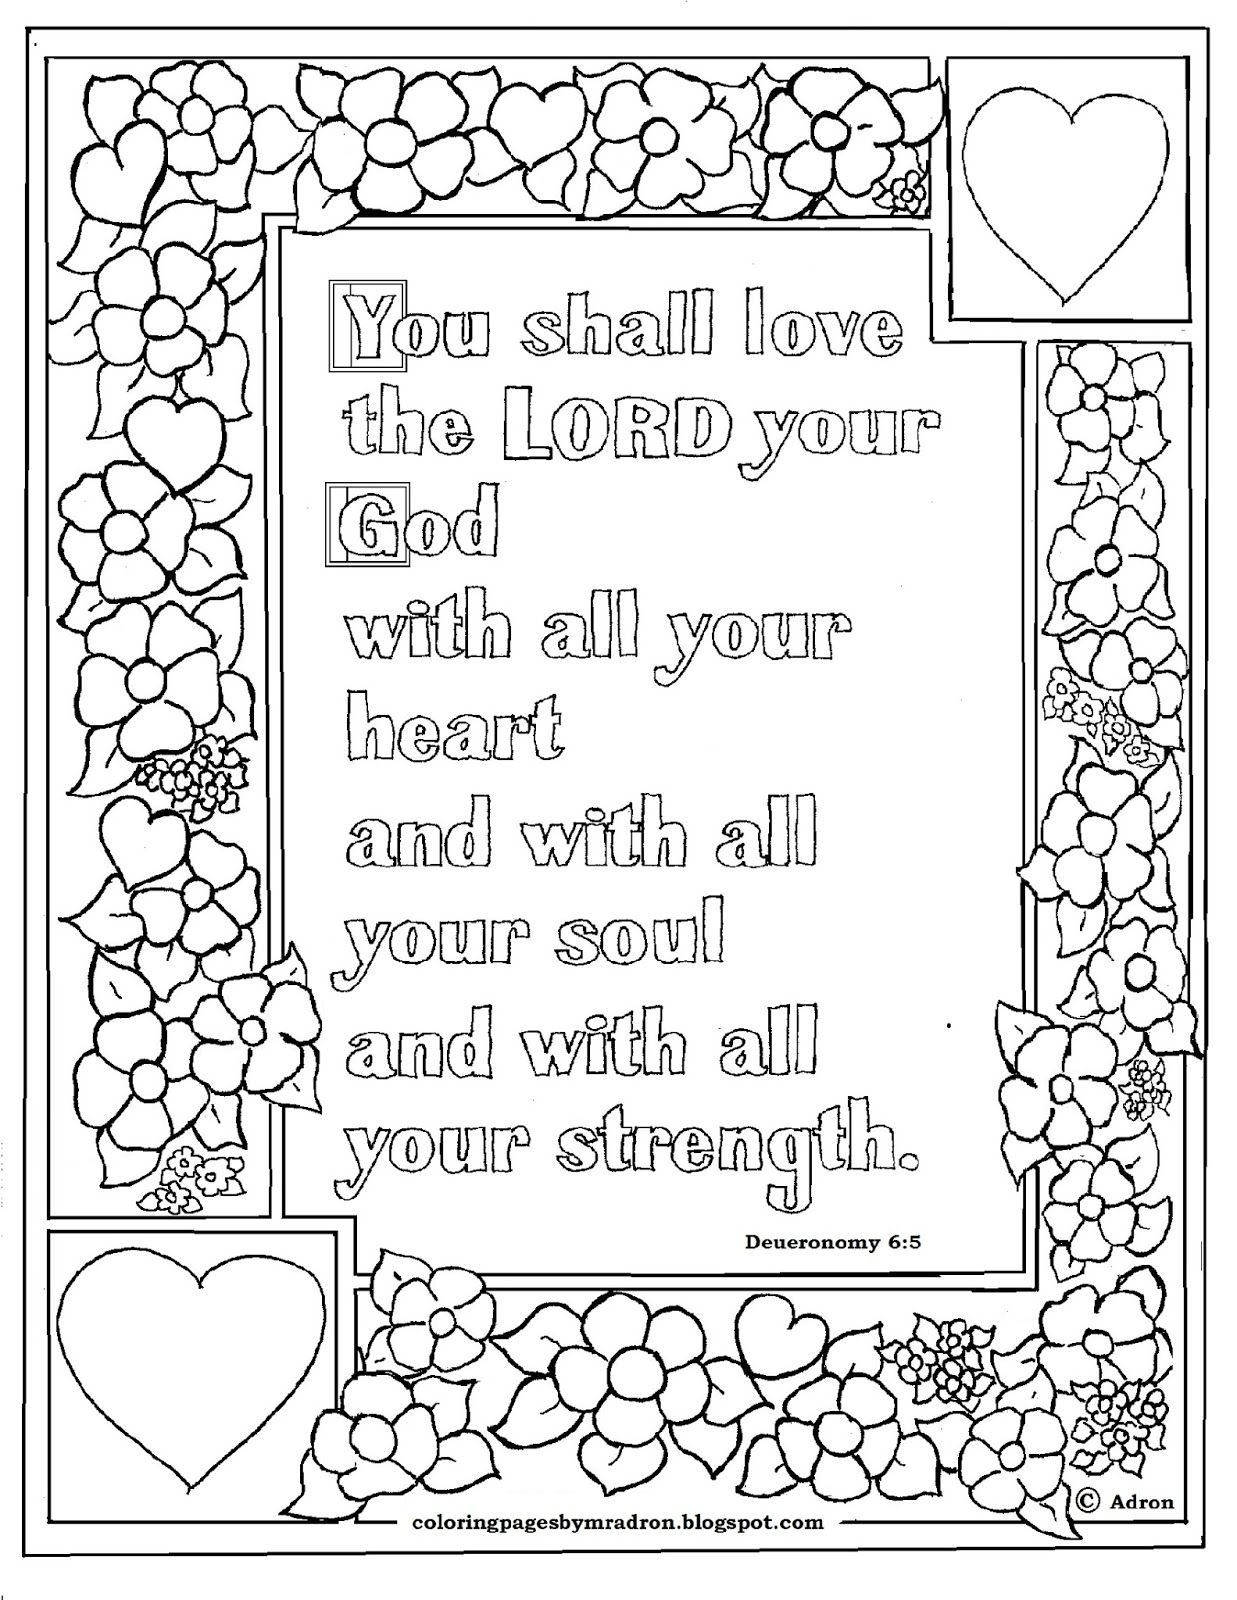 hiking coloring pages Download-Deuteronomy 6 5 Bible verse to print and color This is a free printable Bible verse coloring page it is perfect for children and adults t 16-d